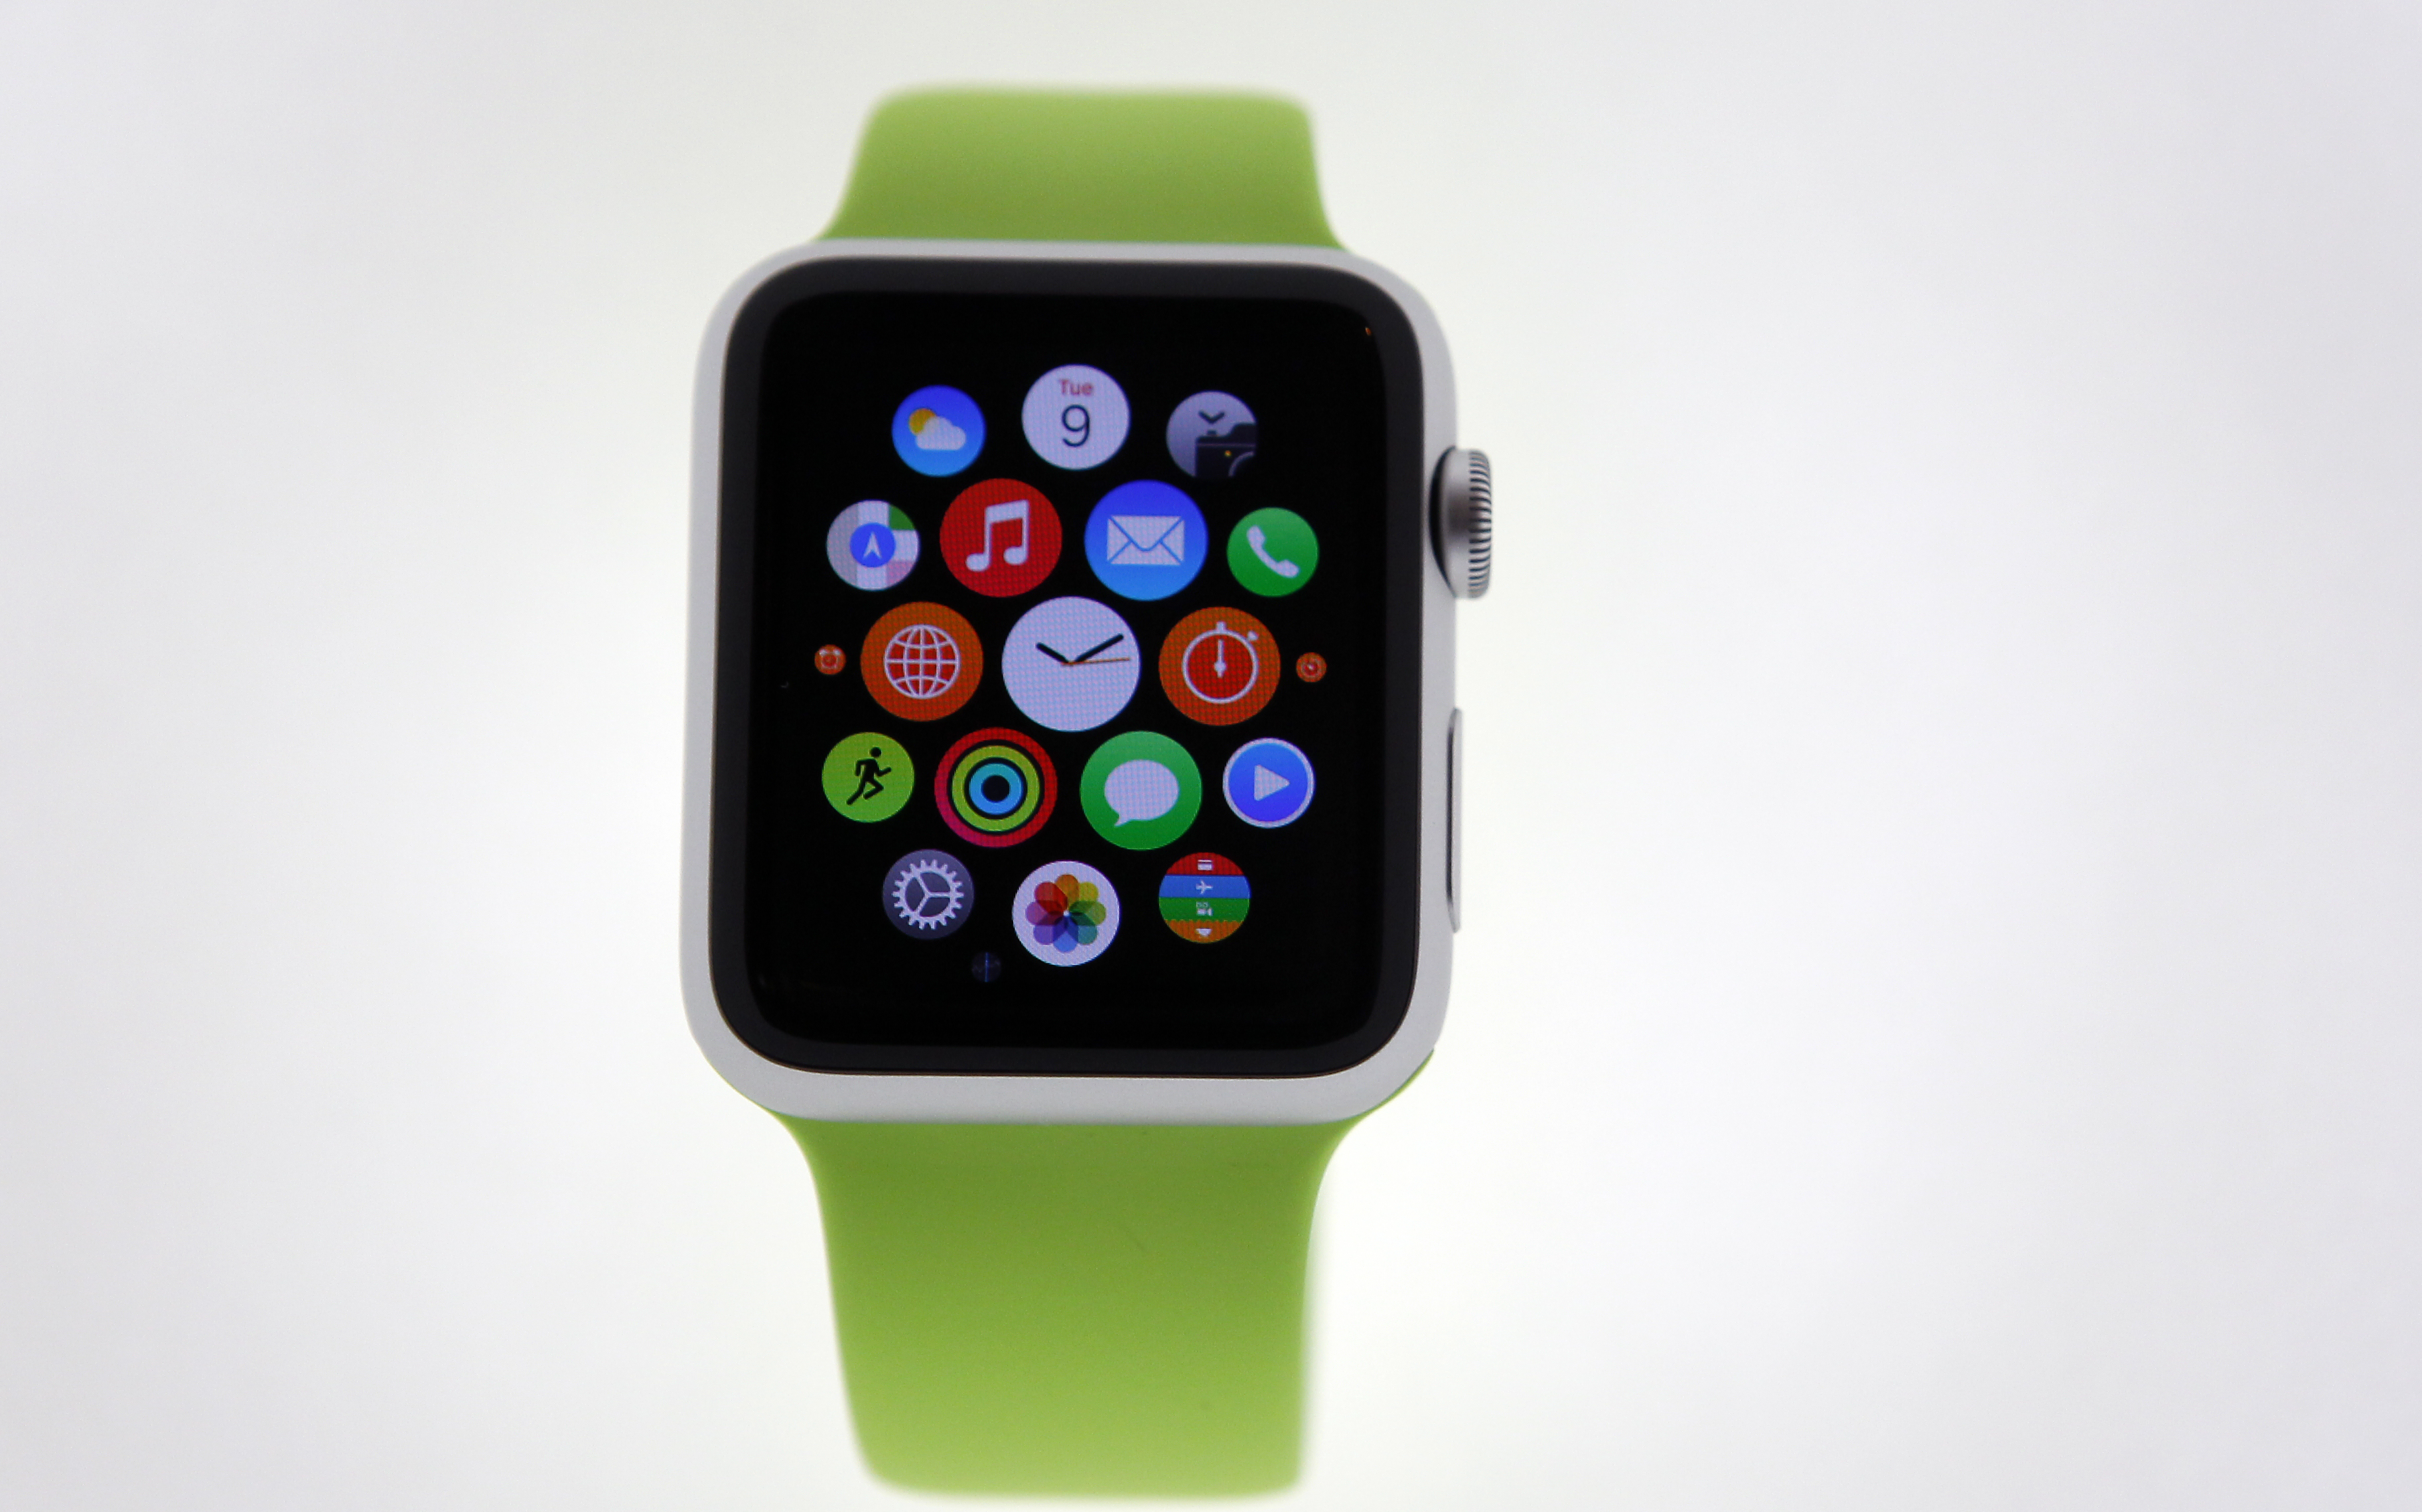 The new Apple Watch is displayed during an Apple special event at Colette store on Sept. 30, 2014 in Paris, France.